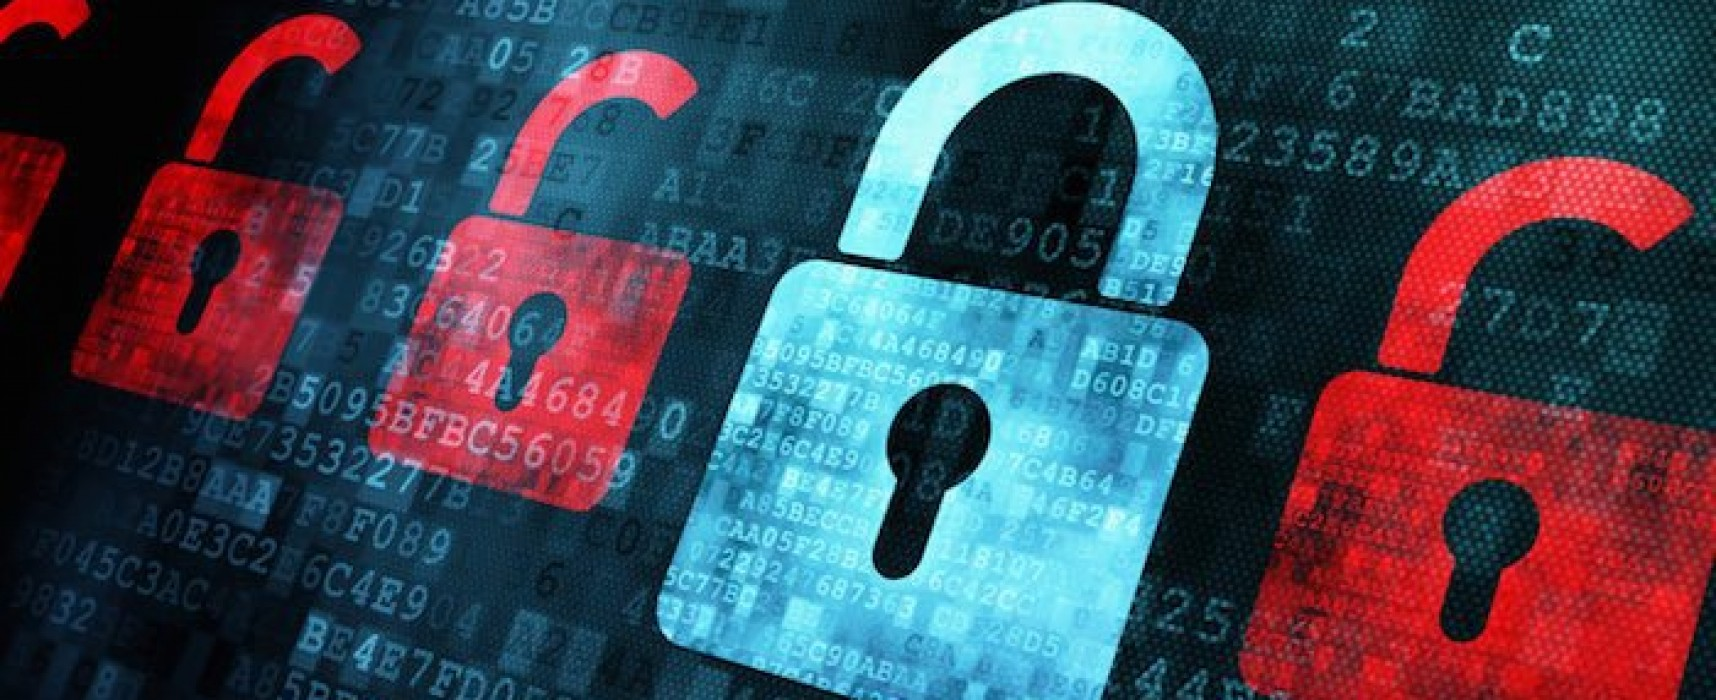 Top 8 VPN Providers with Hardened Security